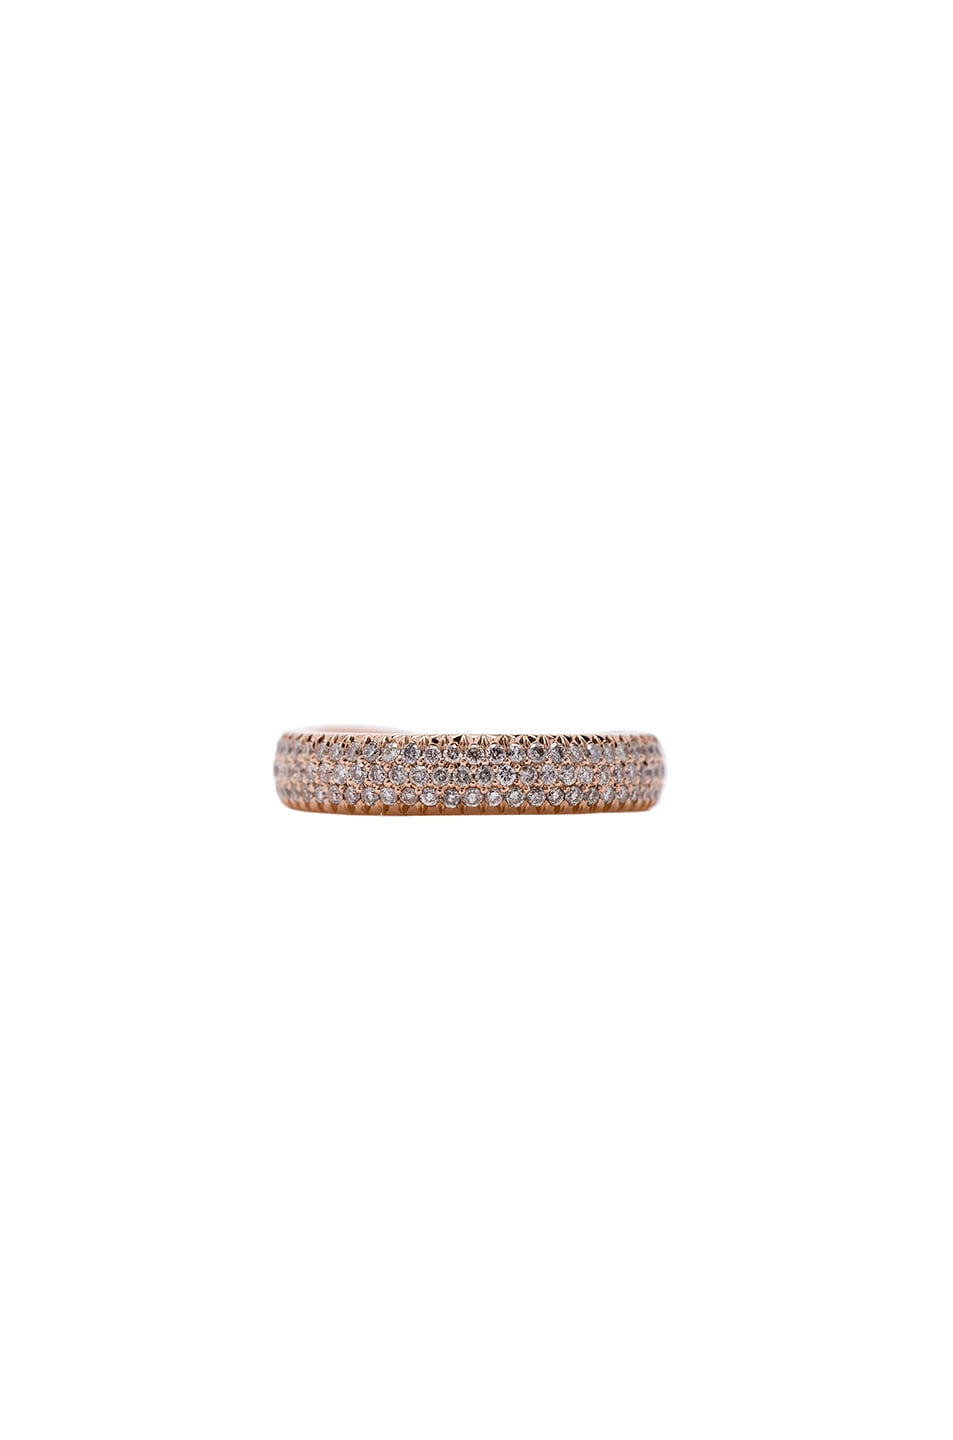 Image 3 of Eva Fehren Kissing Claw Ring in 18K Rose Gold & Pale Champagne Diamonds